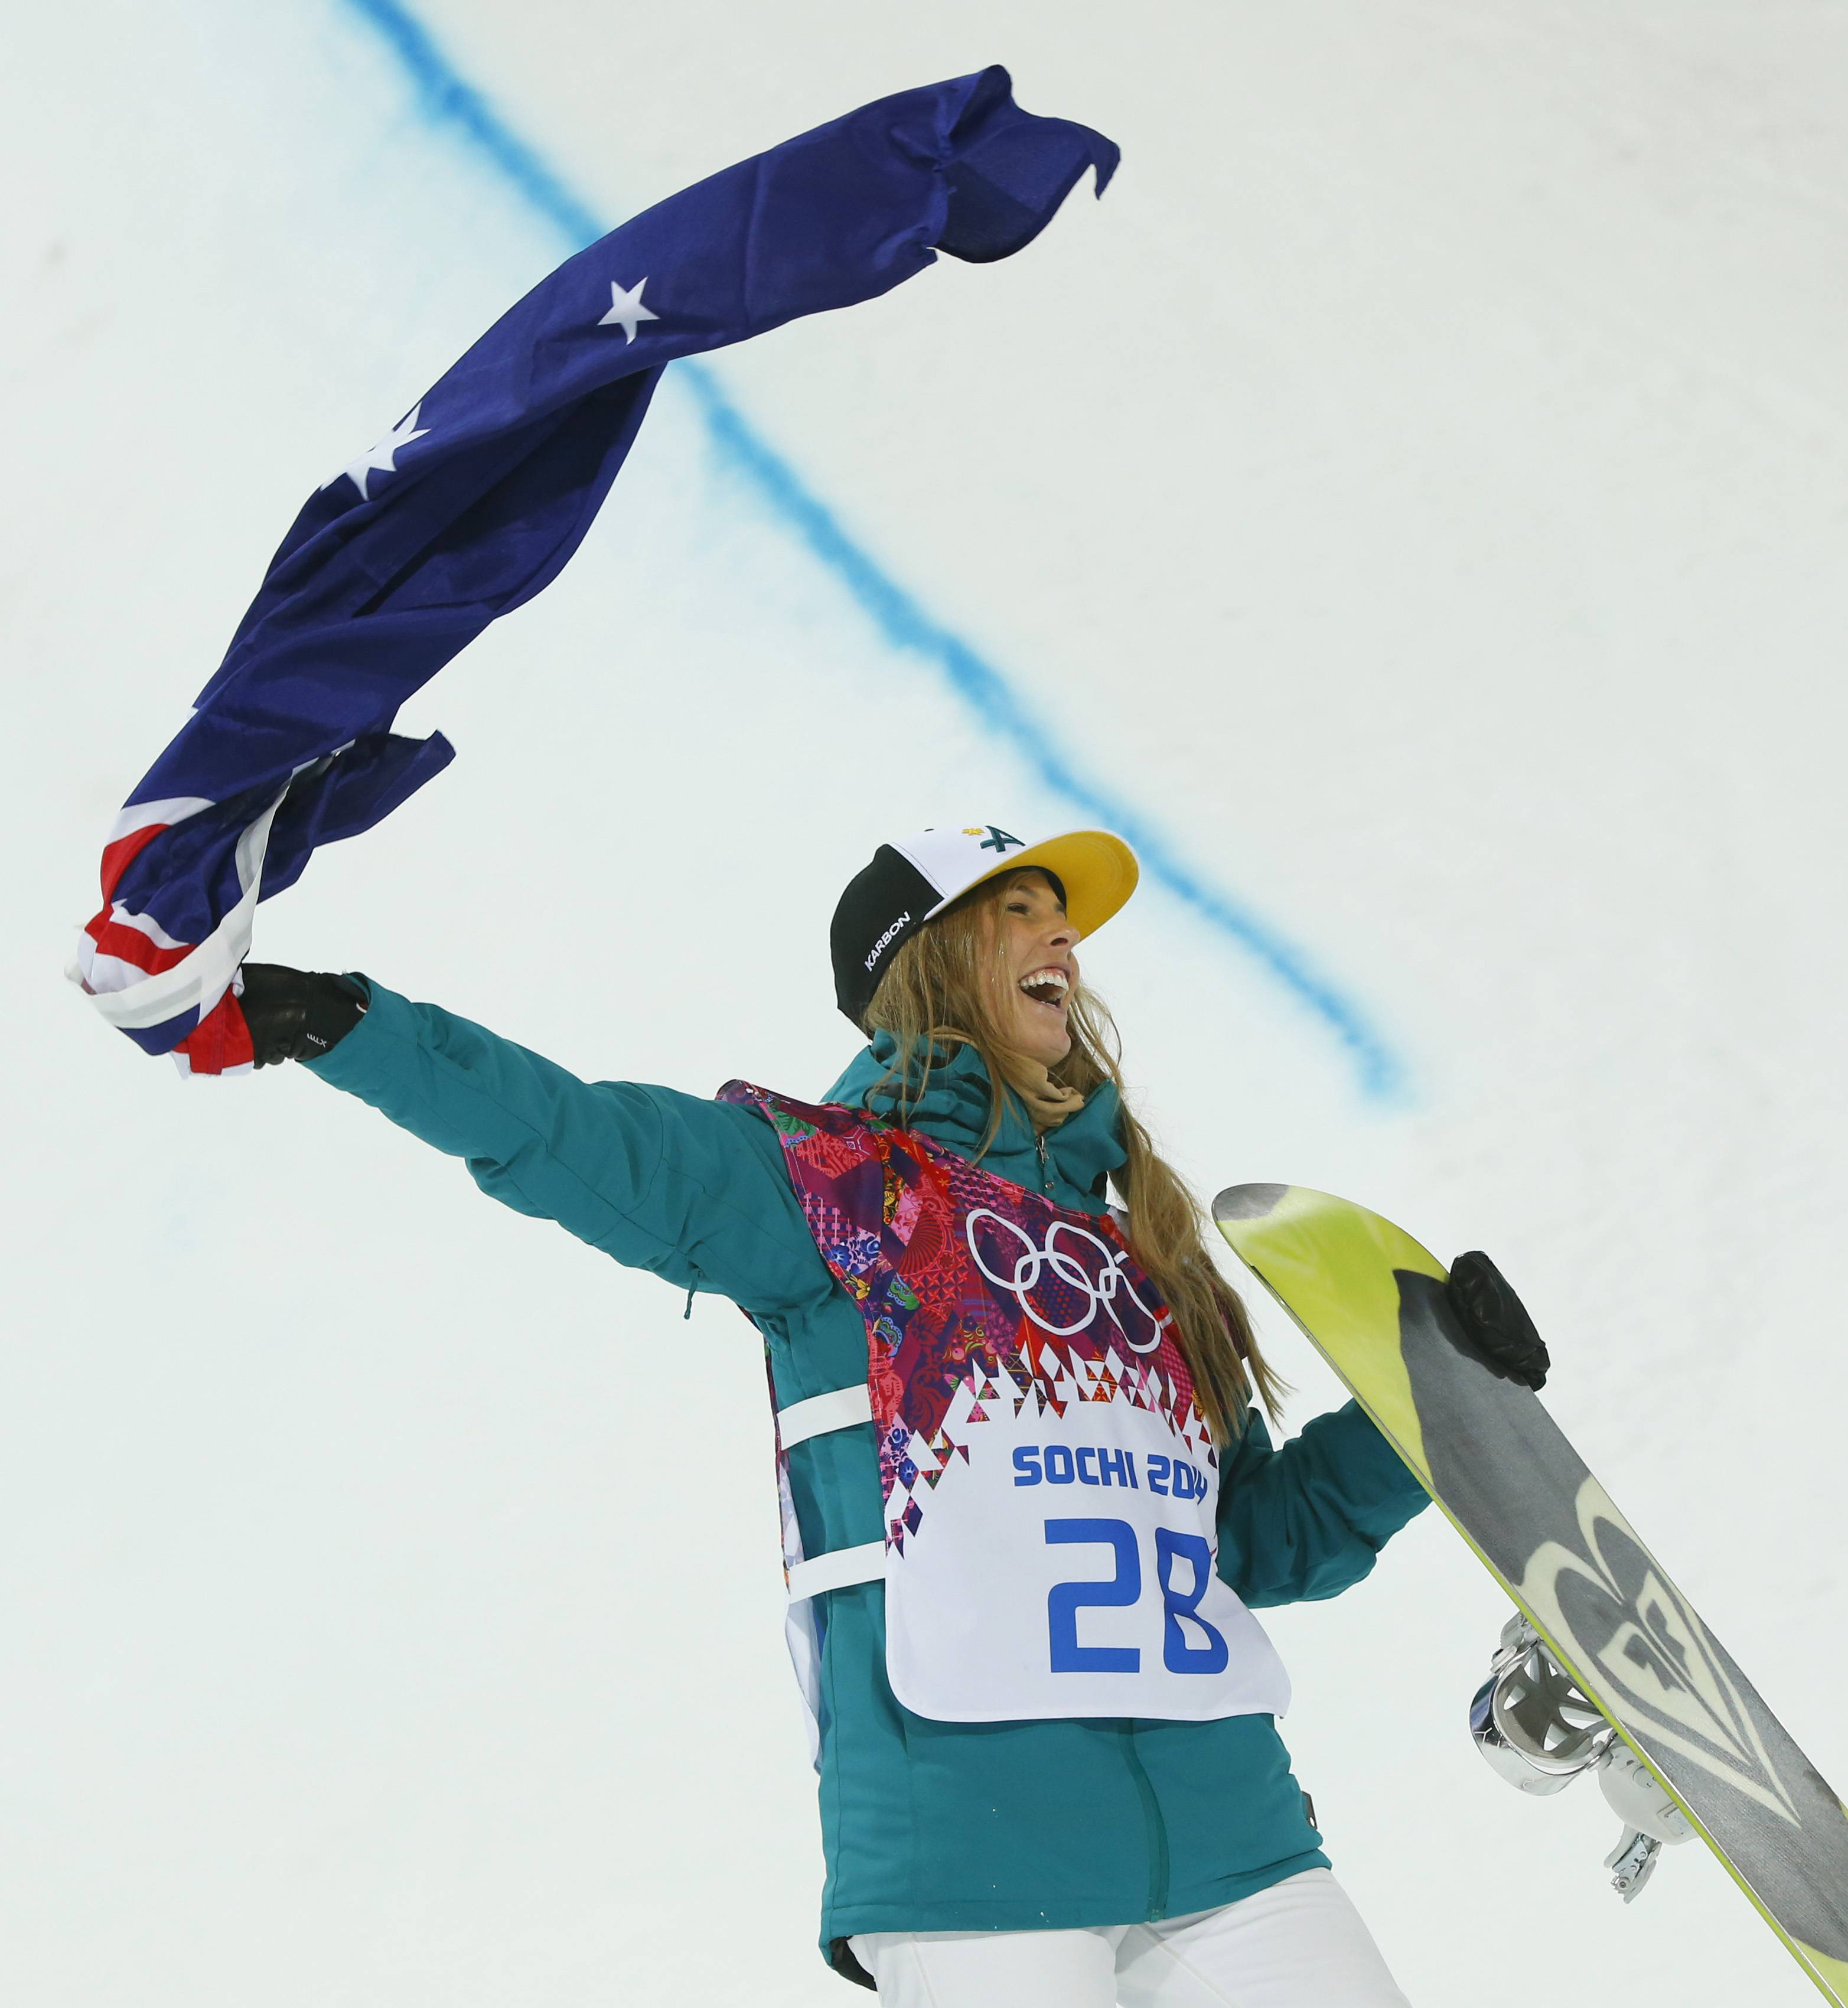 Australia's Torah Bright celebrates her silver medal in the  women's snowboard halfpipe final at the Rosa Khutor Extreme Park, at the 2014 Winter Olympics, Wednesday, Feb. 12, 2014, in Krasnaya Polyana, Russia.